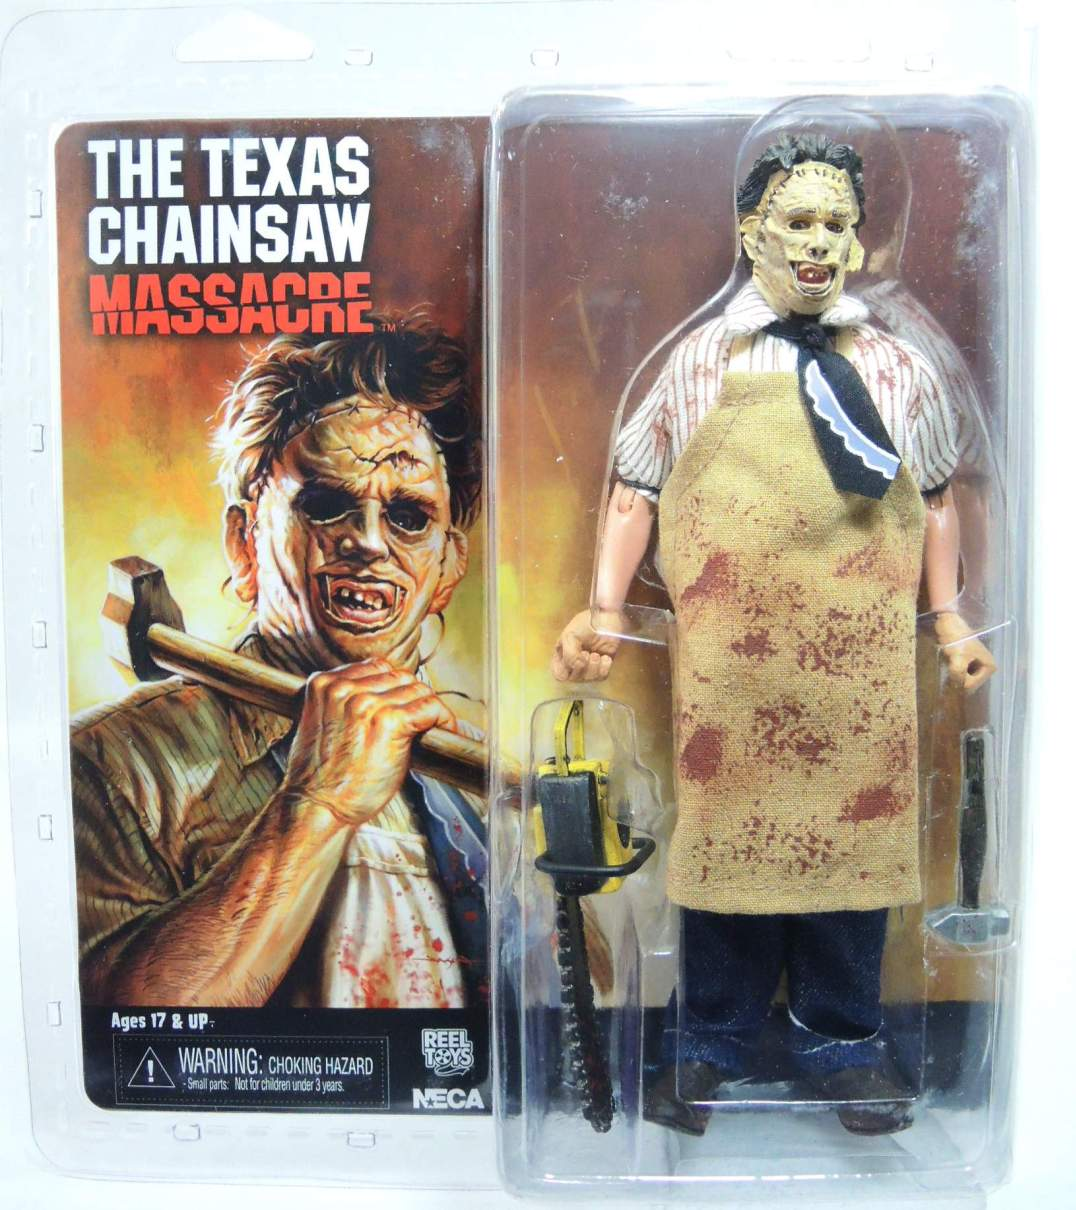 NECA Texas Chainsaw Massacre  8 inch Clothed Figure - Leatherface NECA, Texas Chainsaw Massacre, Action Figures, 2014, horror, halloween, movie